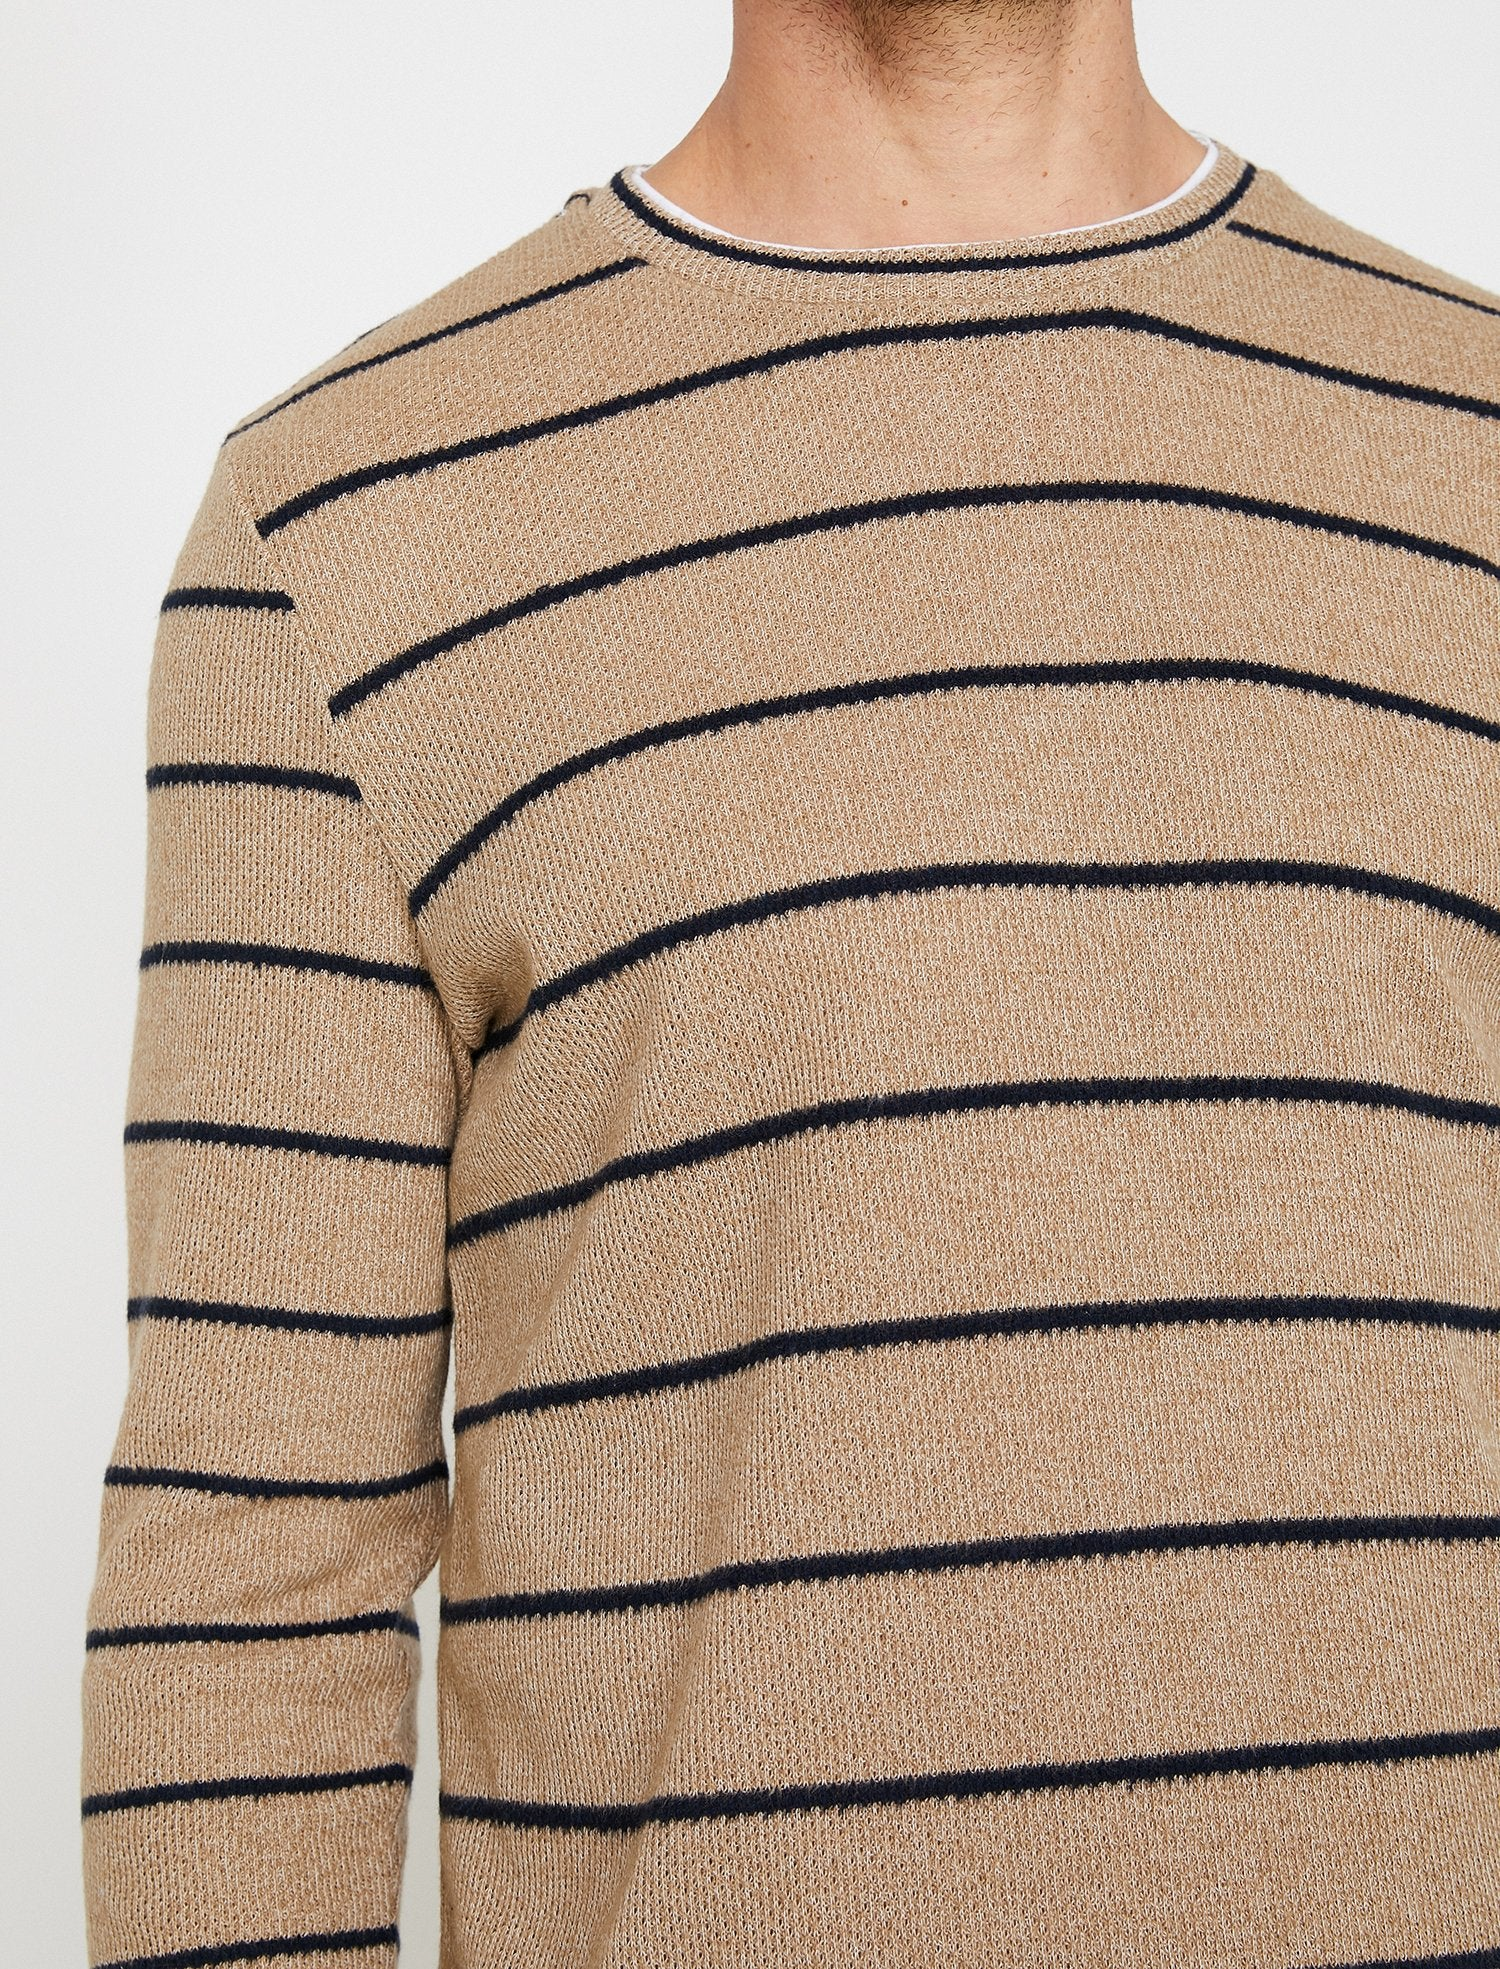 Textured Stripe Sweater in Navy